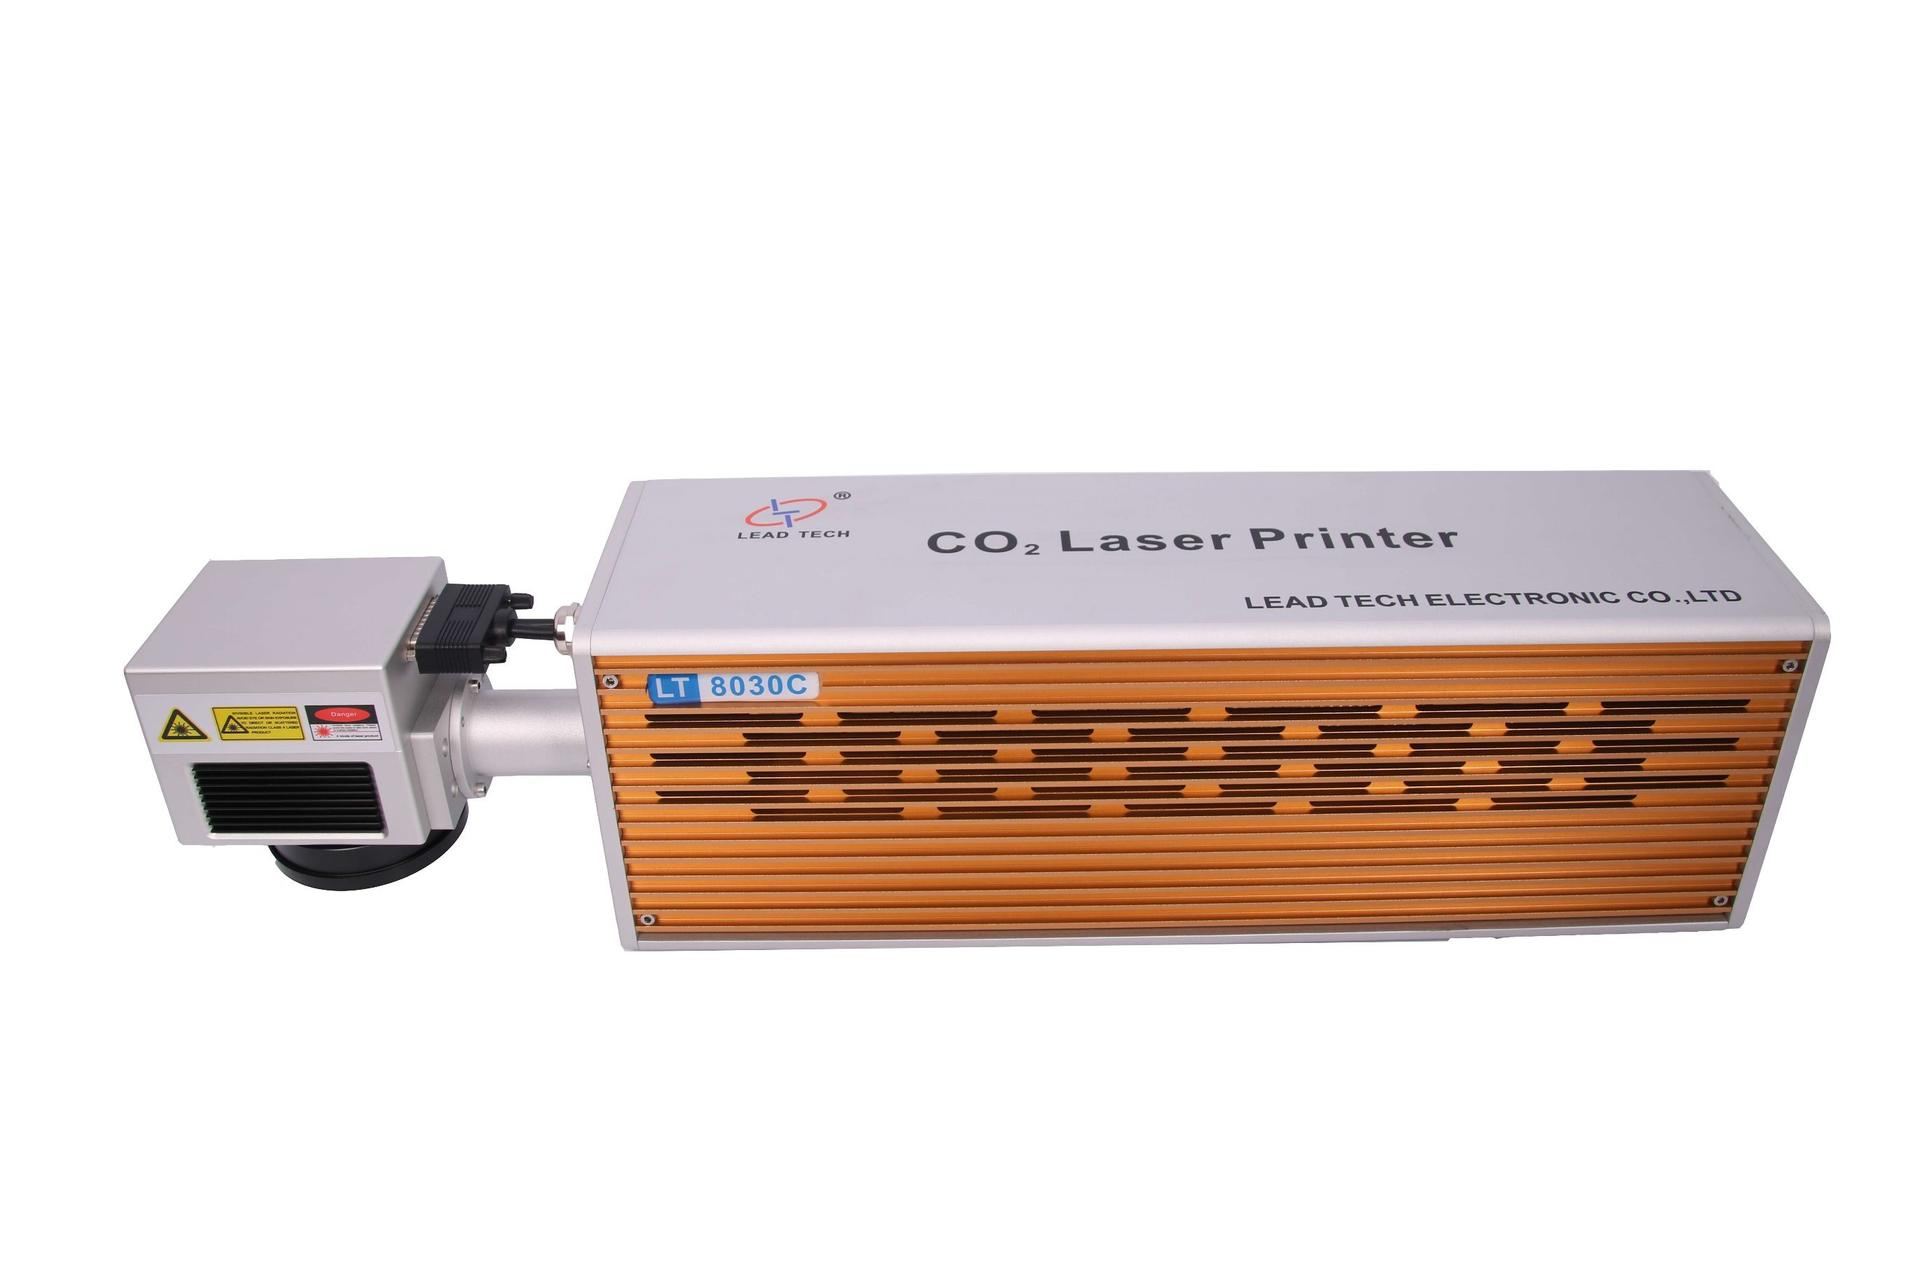 Lead Tech Lt8020c/Lt8030c CO2 20W/30W High Precision Digital Laser Engraving Marking Printer for Cables/PVC Sheets